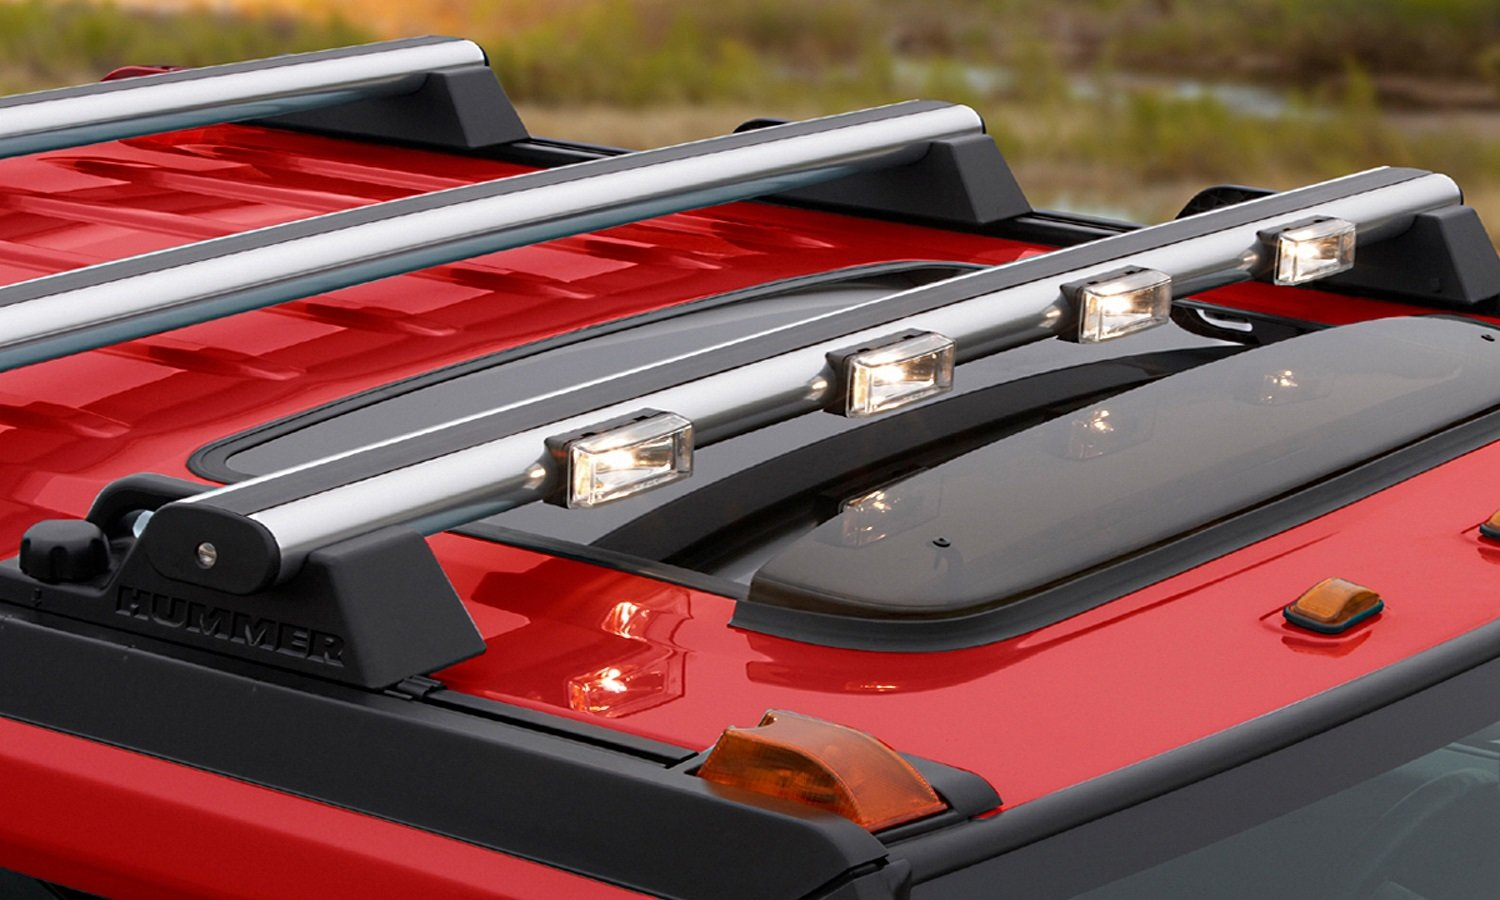 4x oem led roof light bar conversion for hummer h2 convert your existing hid or xenon roof light bar to led remove just the bar from the vehicle ship it to us we modify bar and retrofit to led and ship mozeypictures Gallery